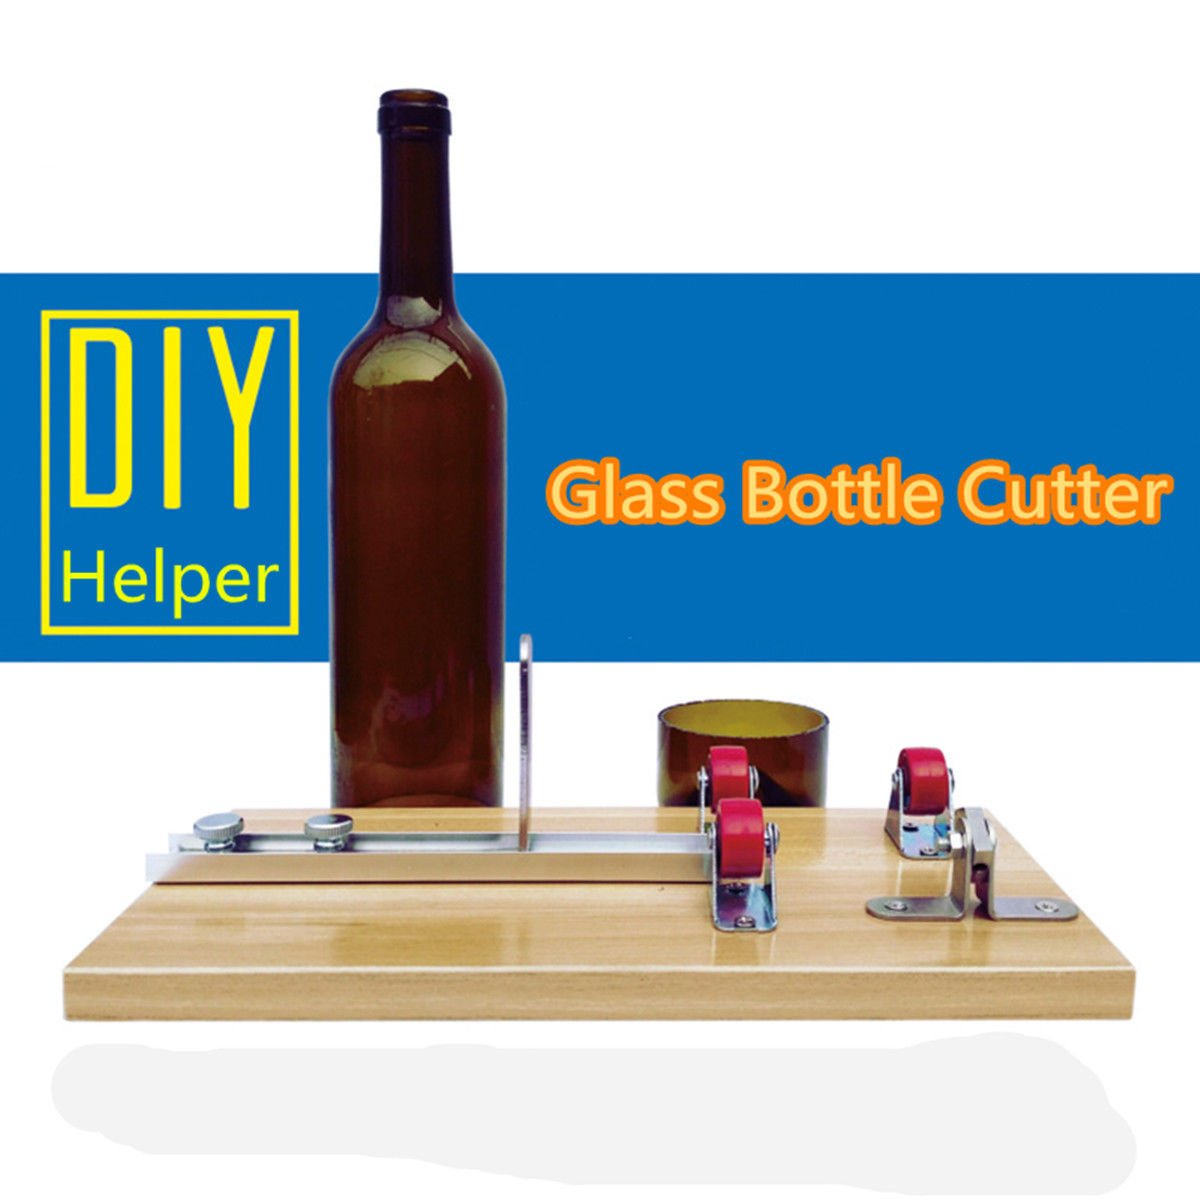 Beer Wine Bottle Cutters Machine Glass Sculpture Art Cutting DIY Recycle Tool